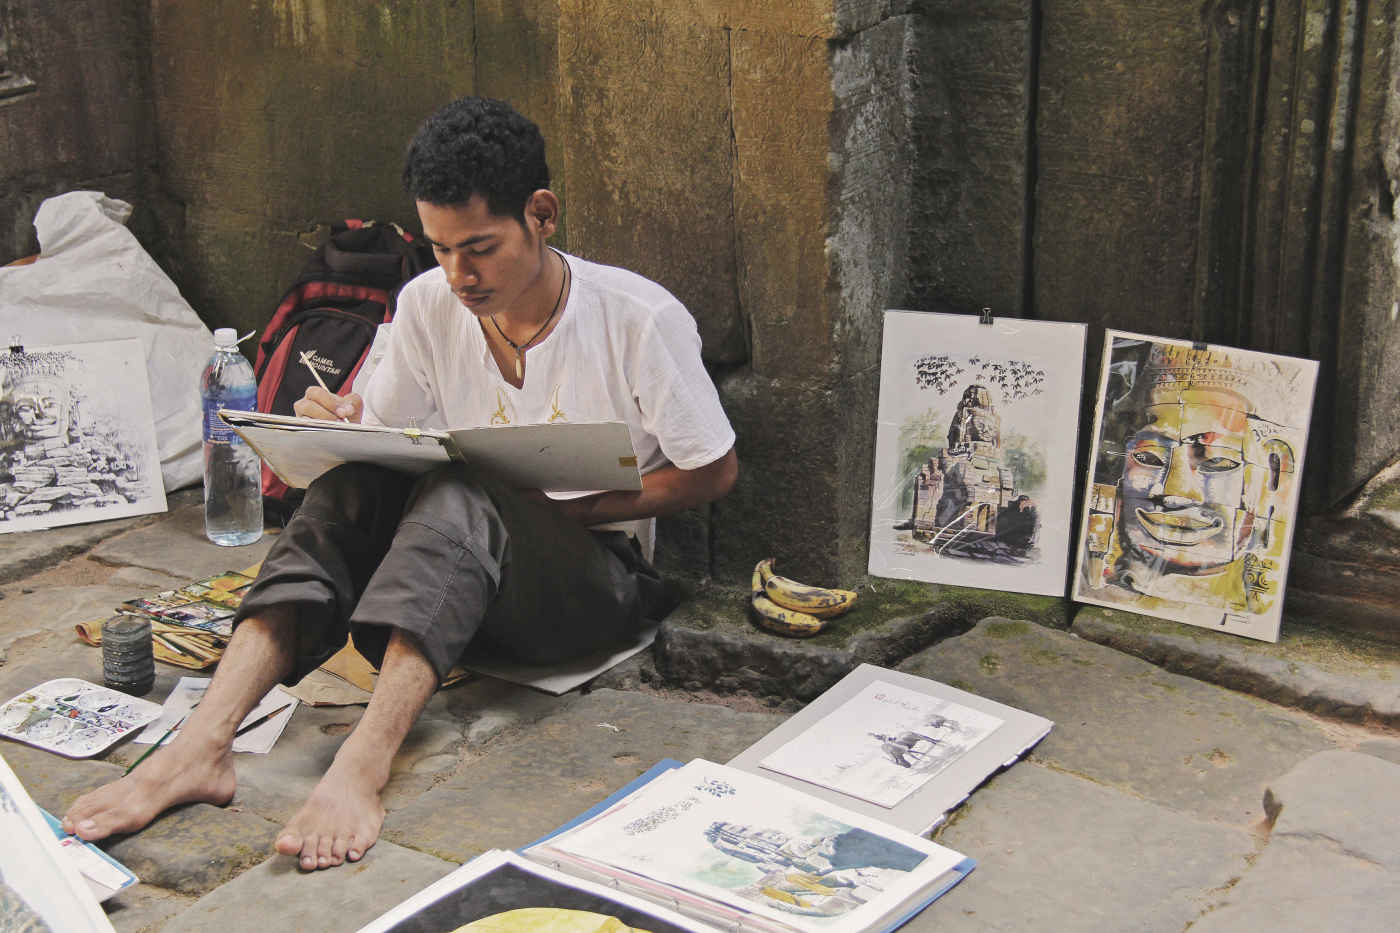 artist, with a selection of his work